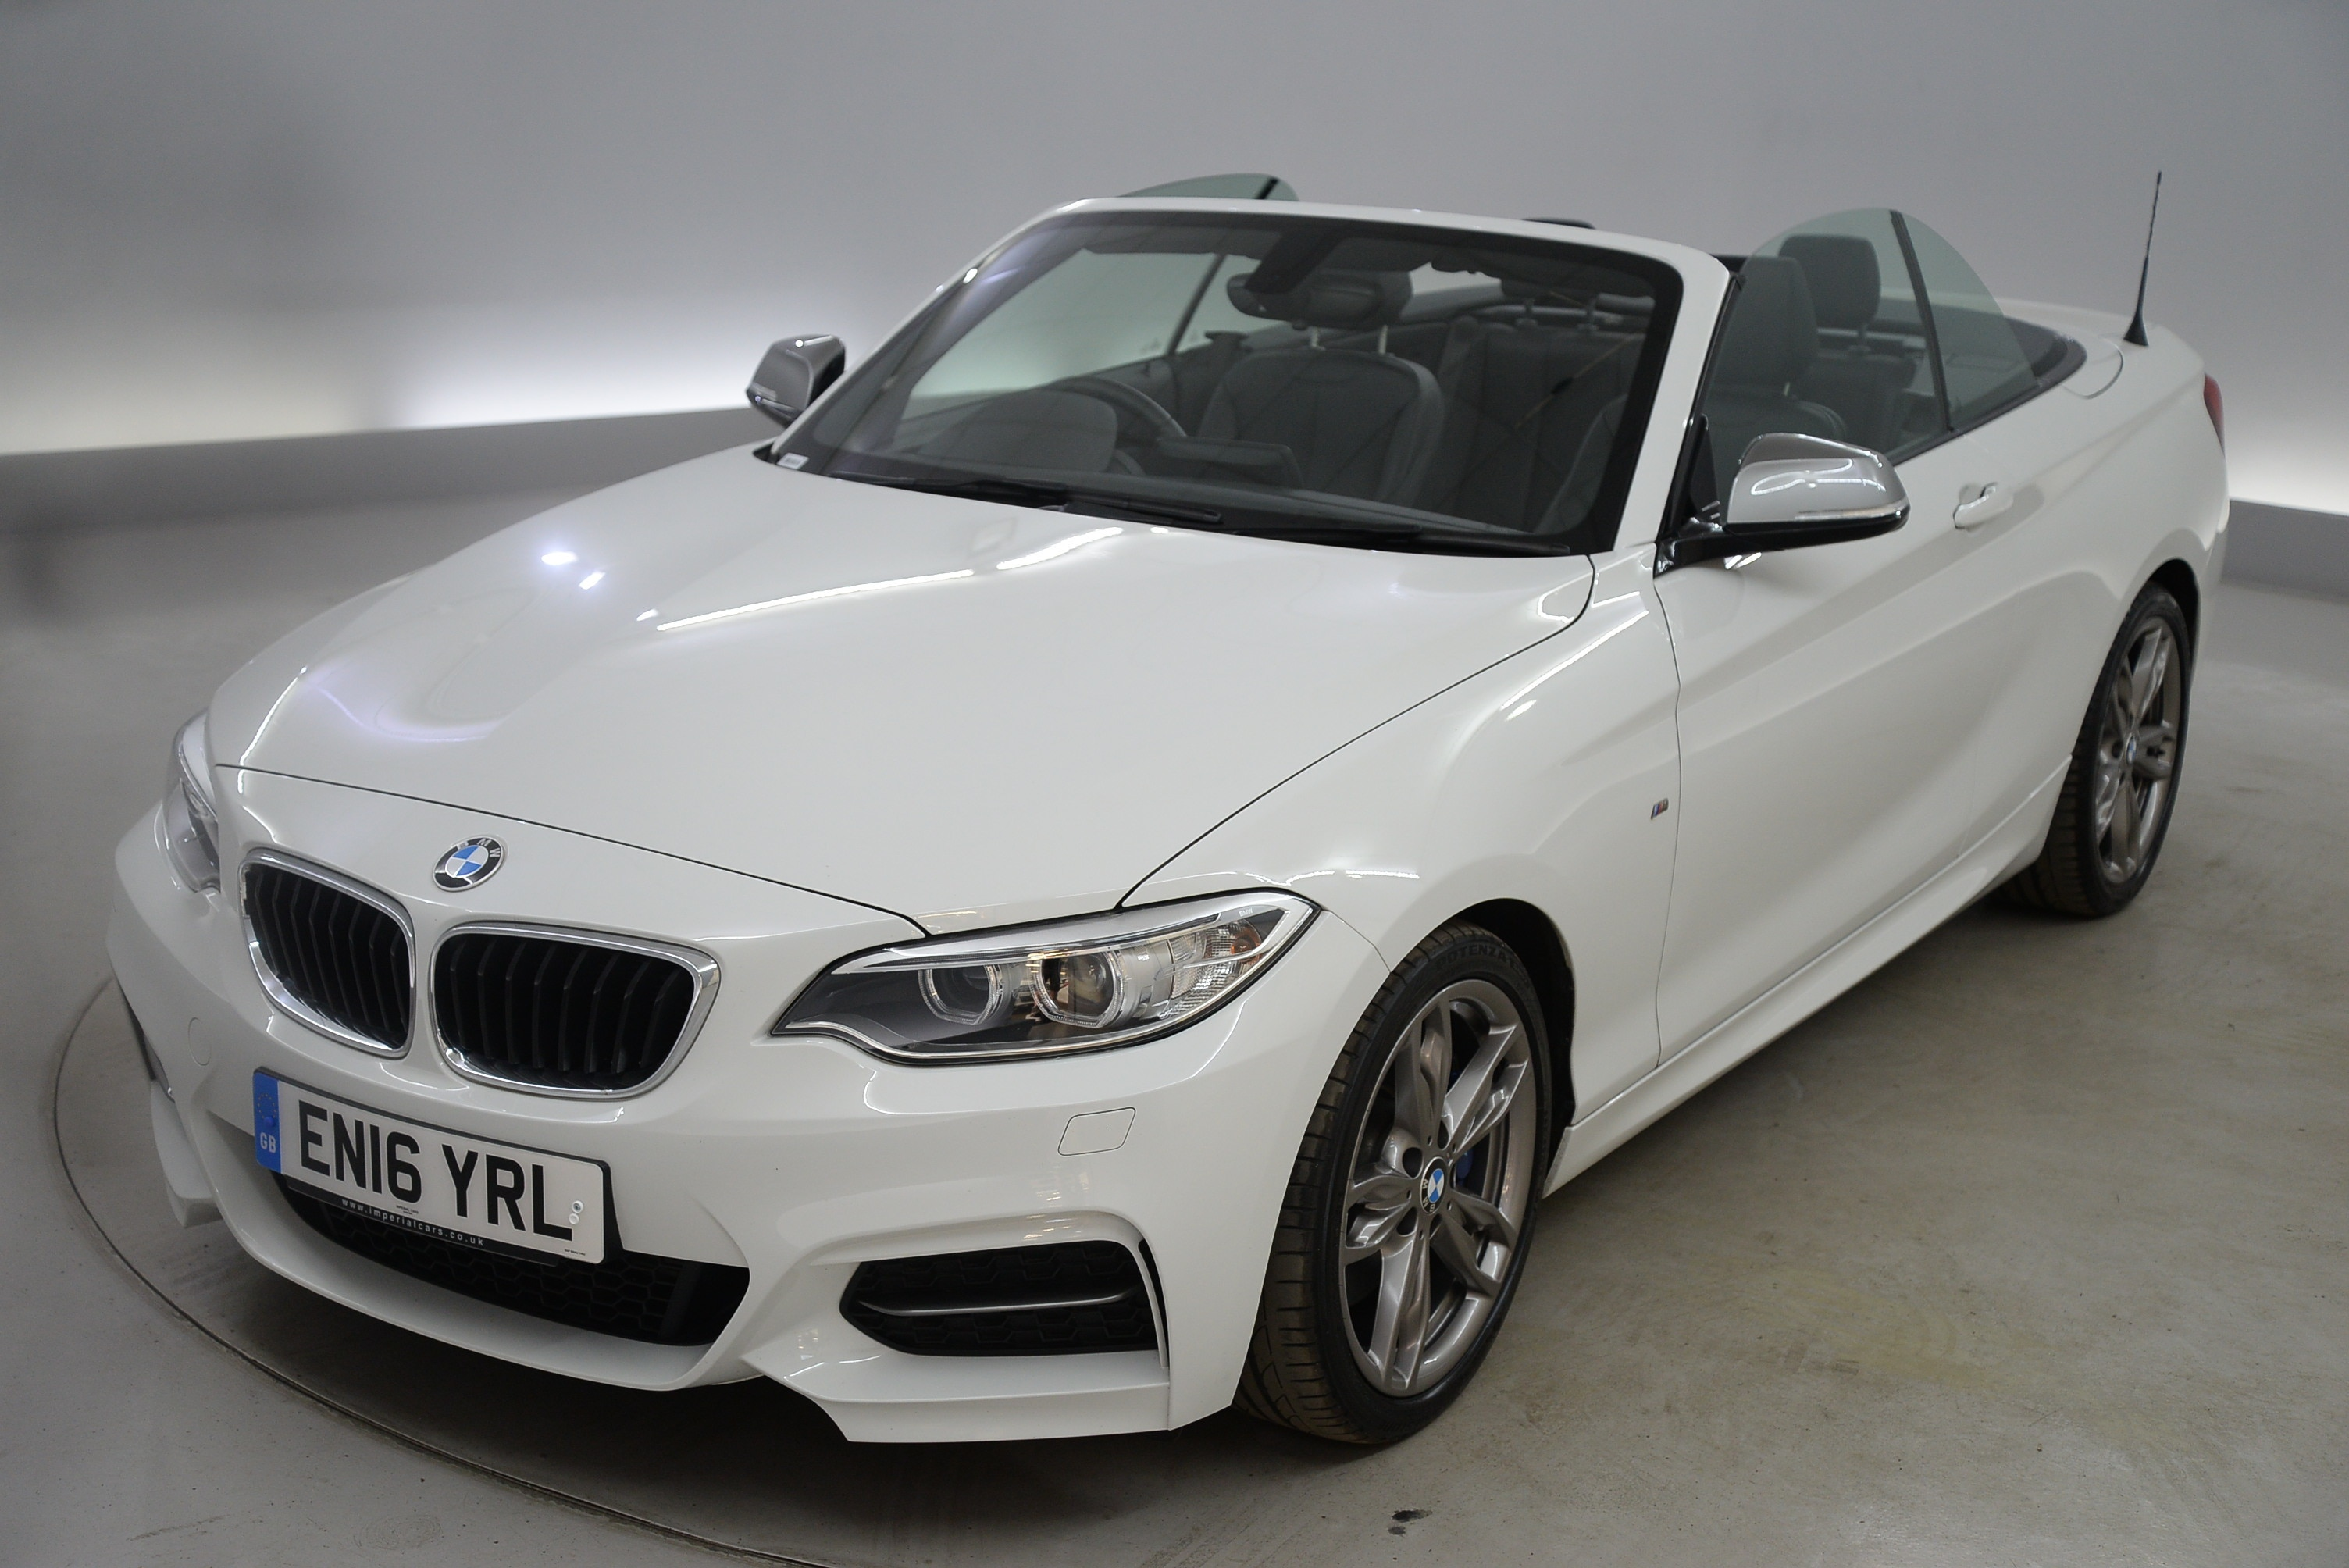 Used BMW 2 Series M235i 2 doors Cars for Sale